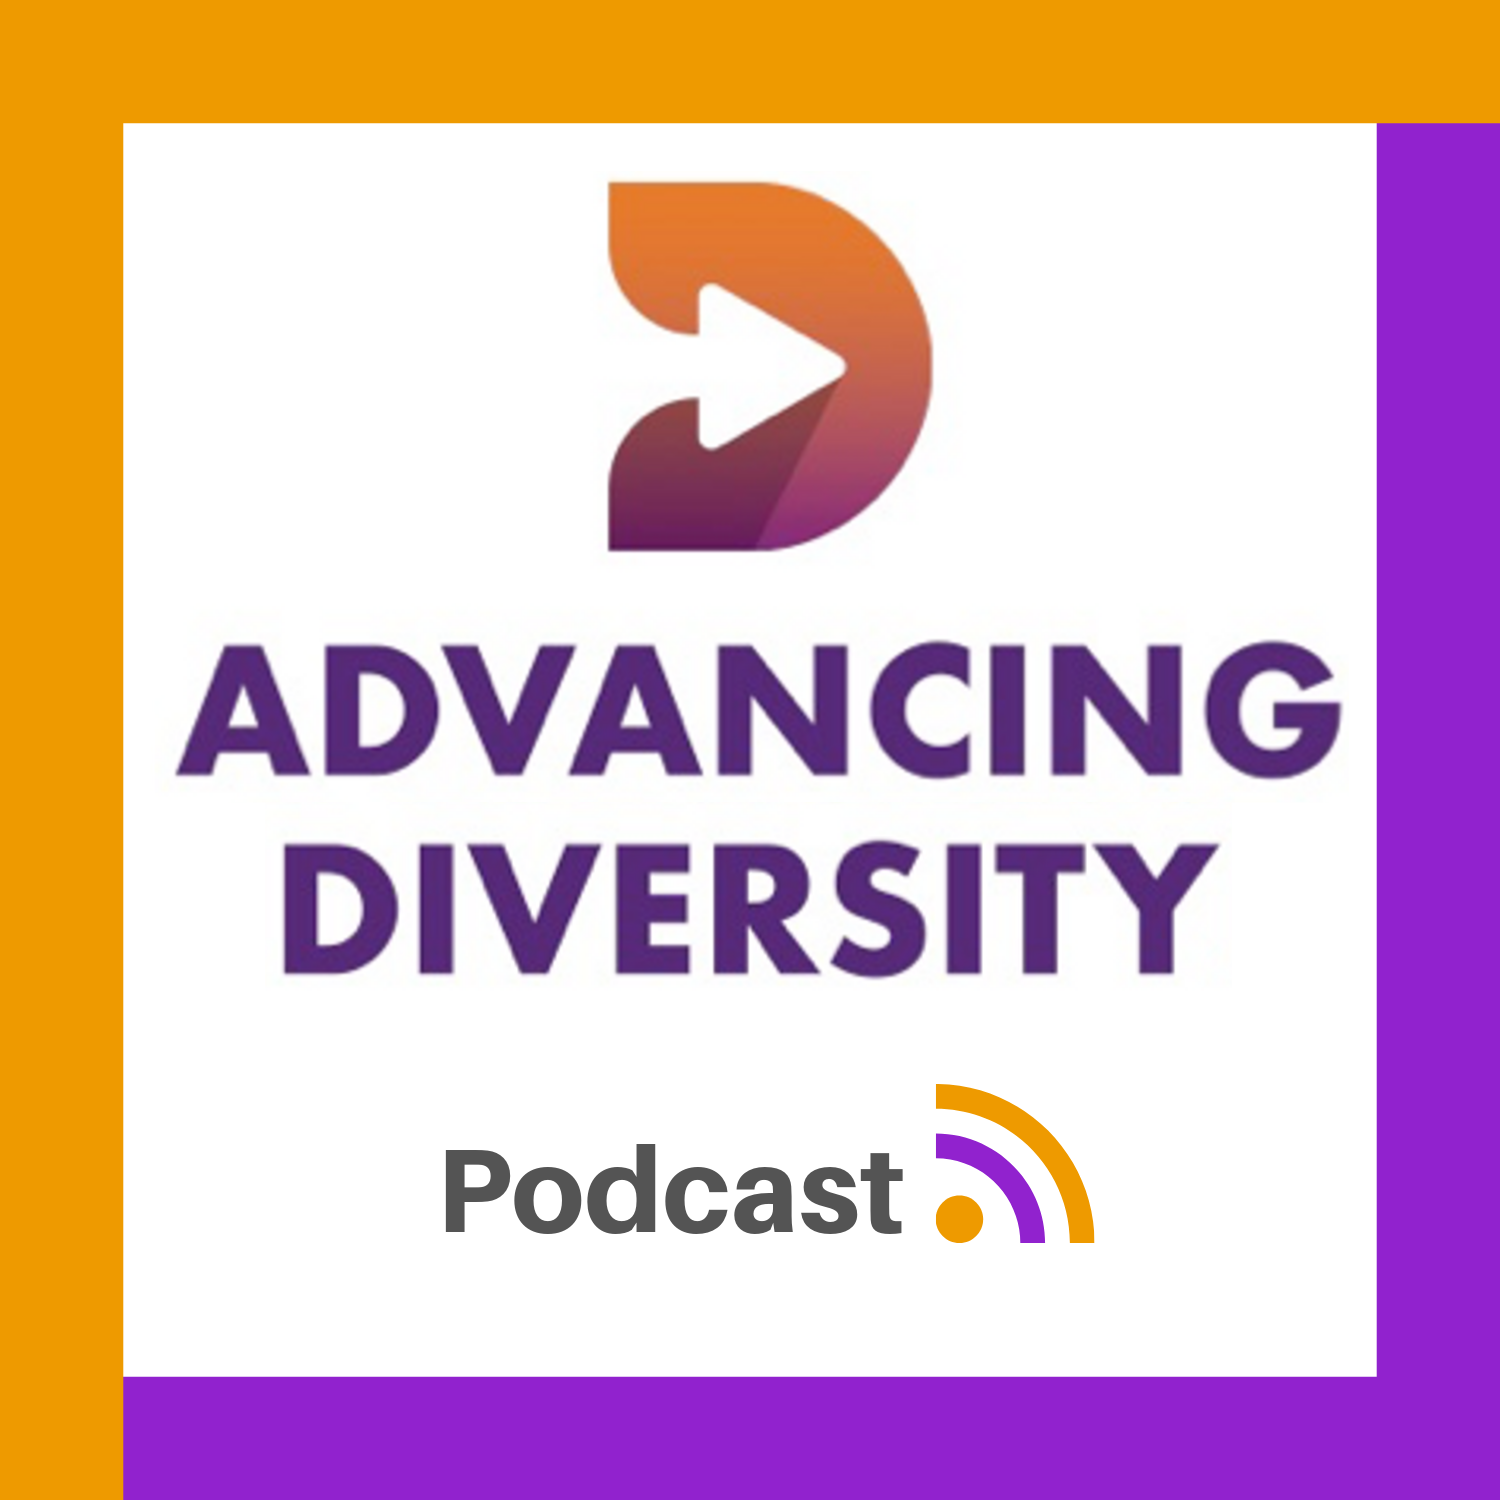 Advancing Diversity Podcast